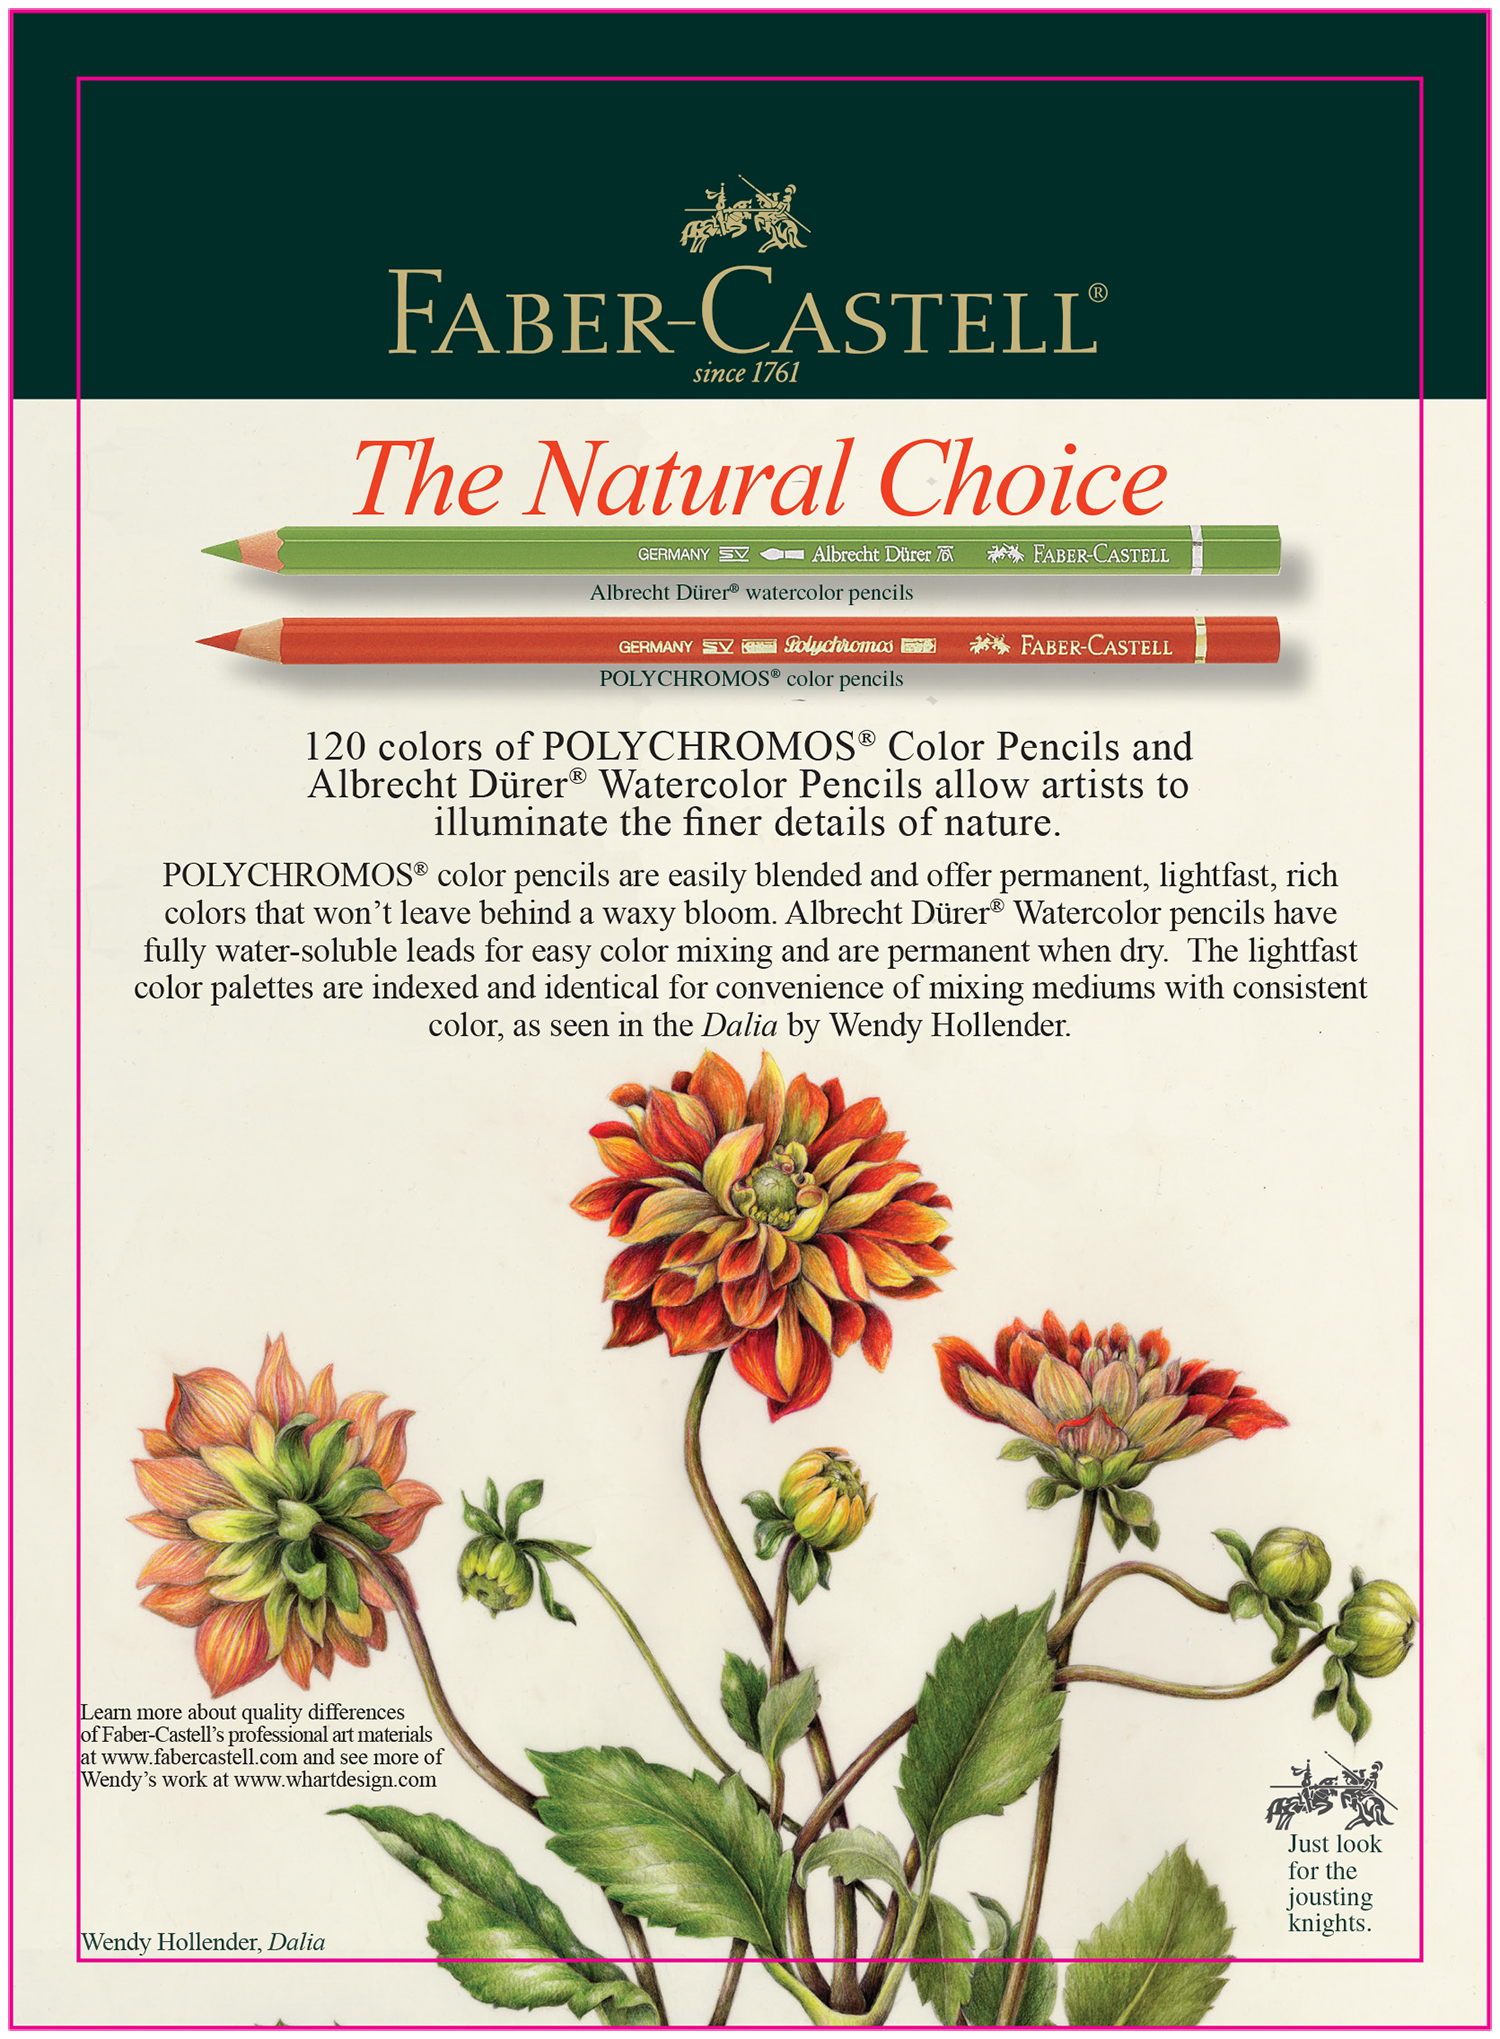 Faber-Castell 2010-present